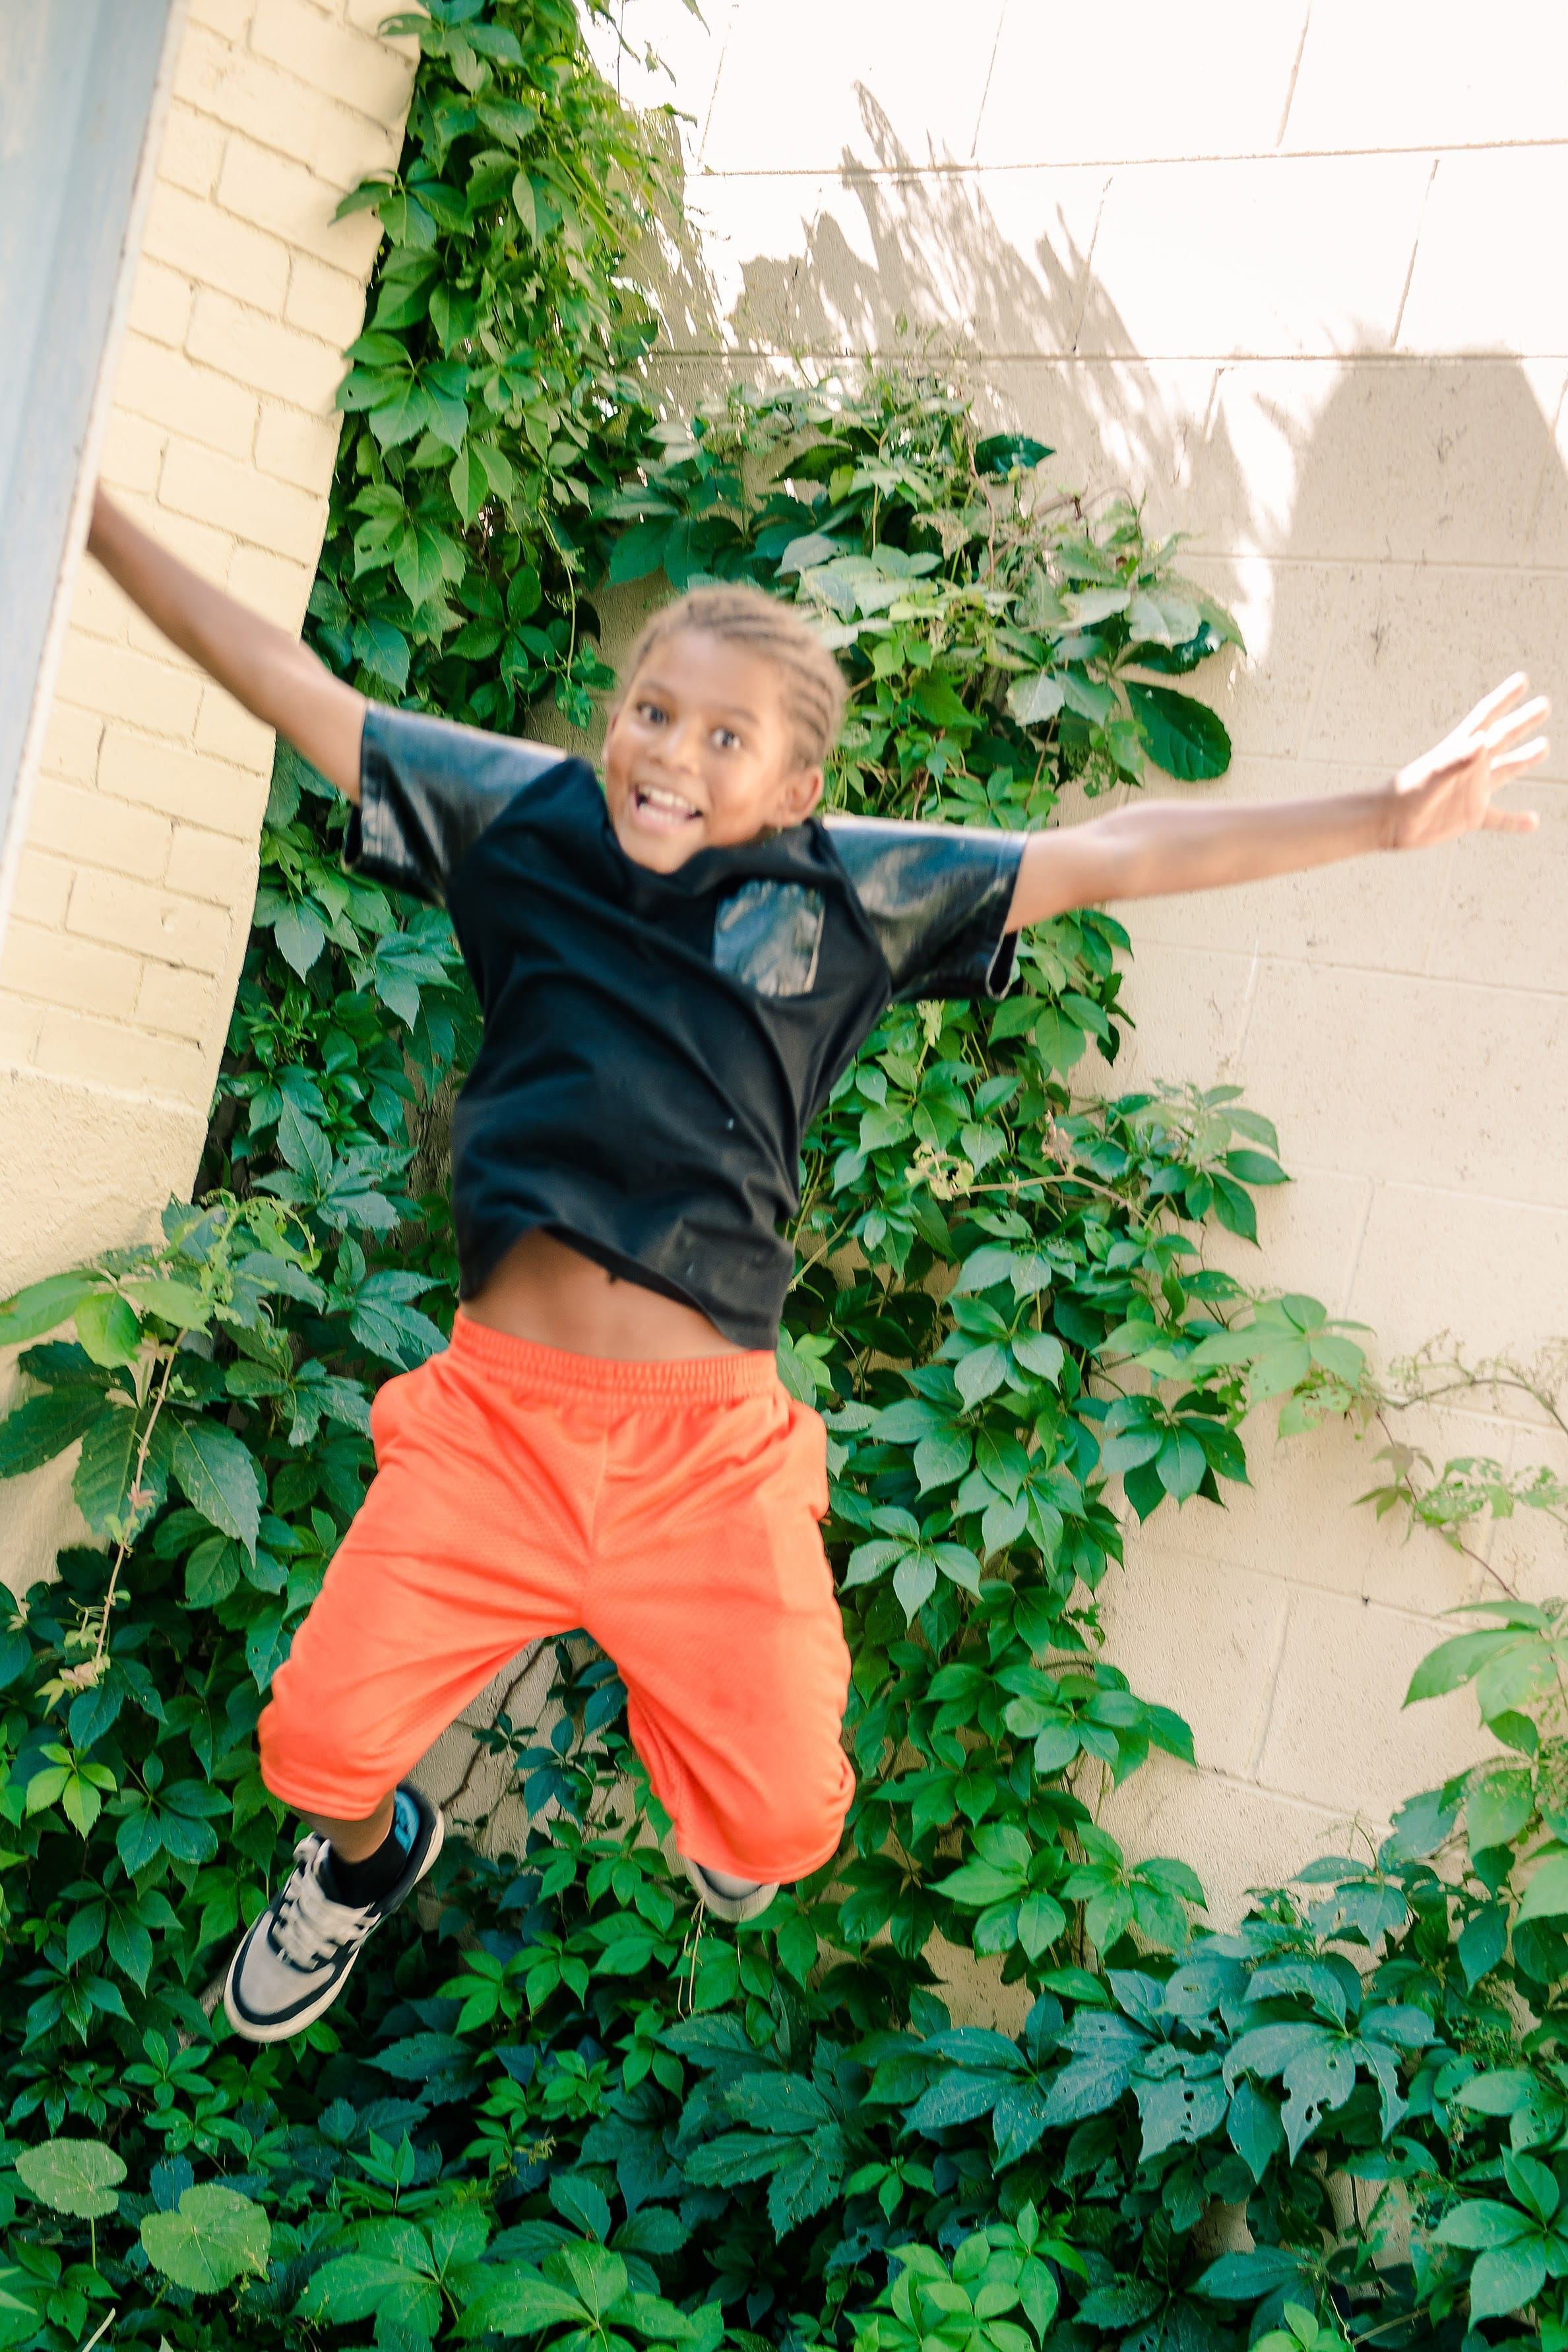 Kid happily jumping in the air in front of green plants growing on a brick wall